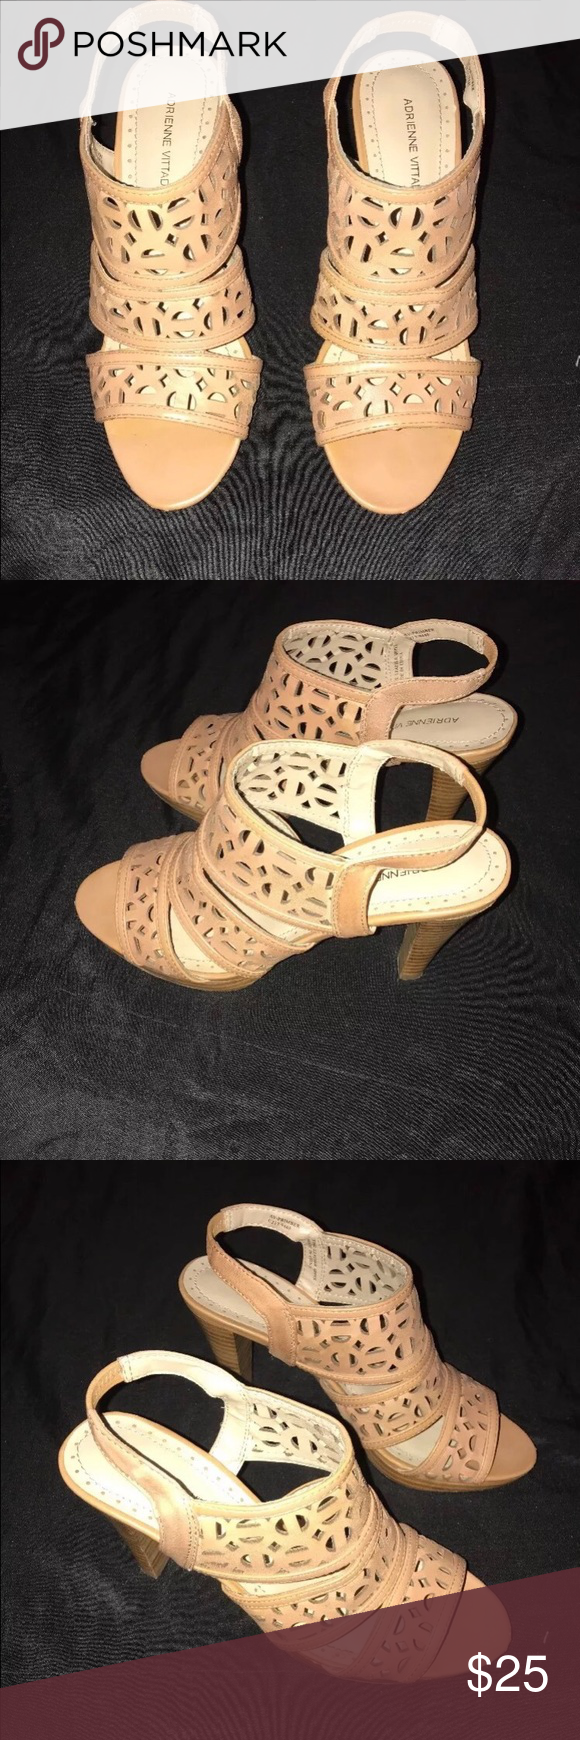 Adrienne Vittadini heels Tan heels size 6.5 very good condition 😊 Adrienne Vittadini Shoes Heels